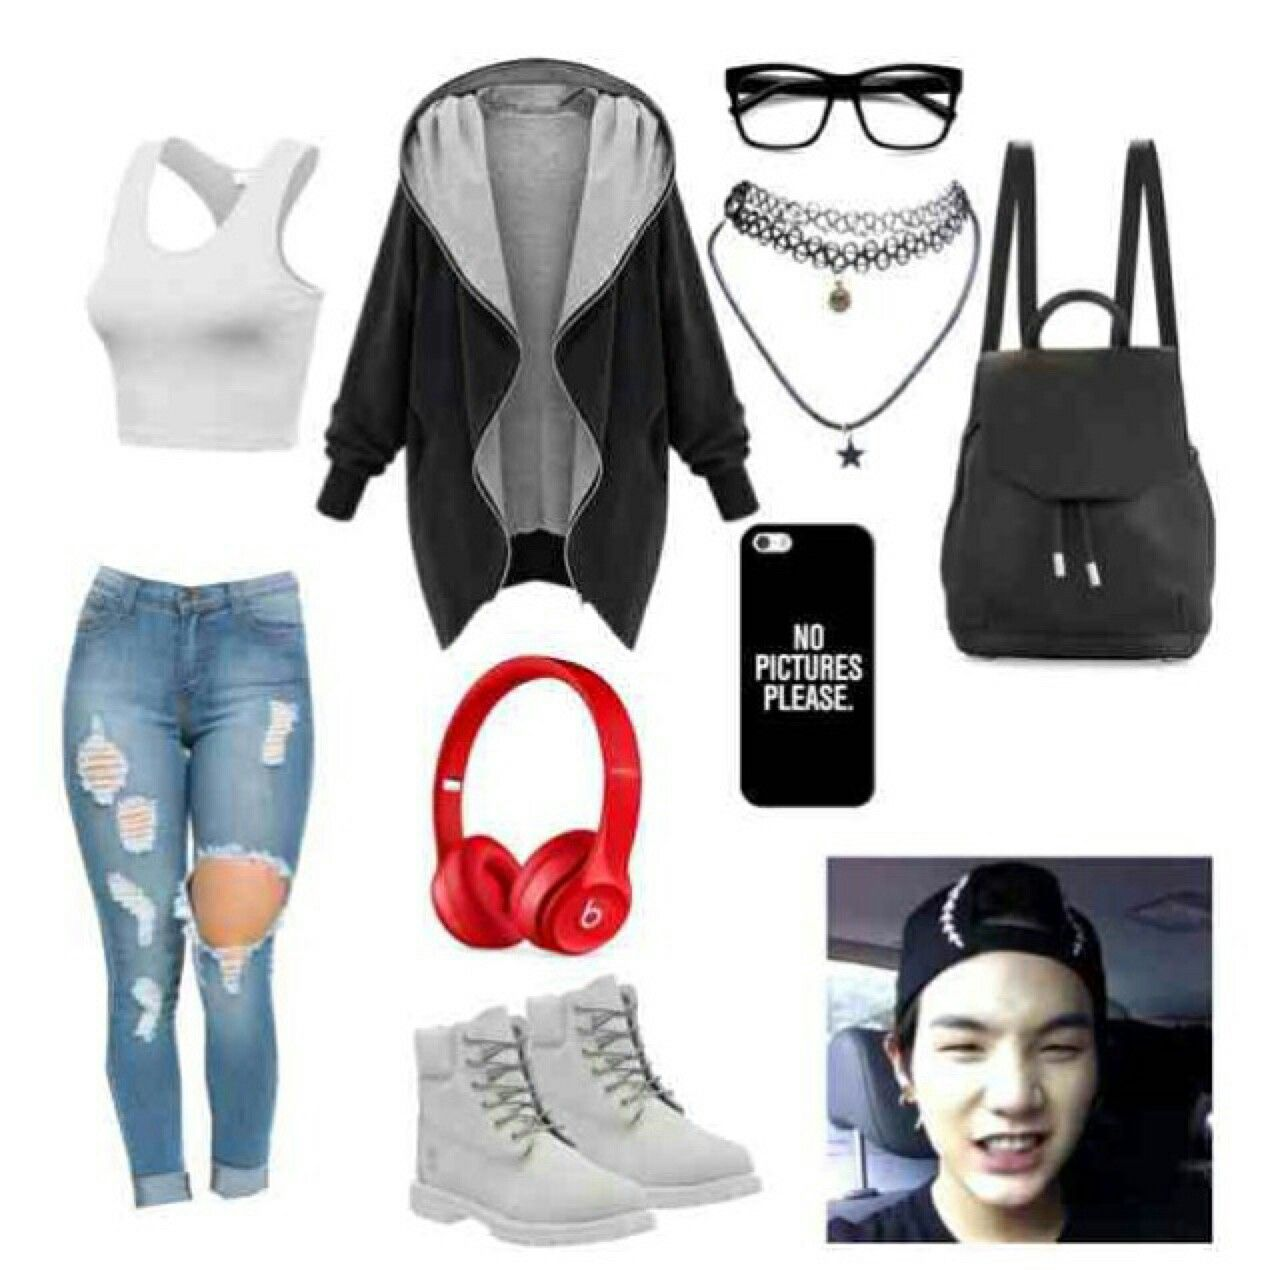 bts suga outfits fashion pinterest outfit ideen outfit und journelles. Black Bedroom Furniture Sets. Home Design Ideas